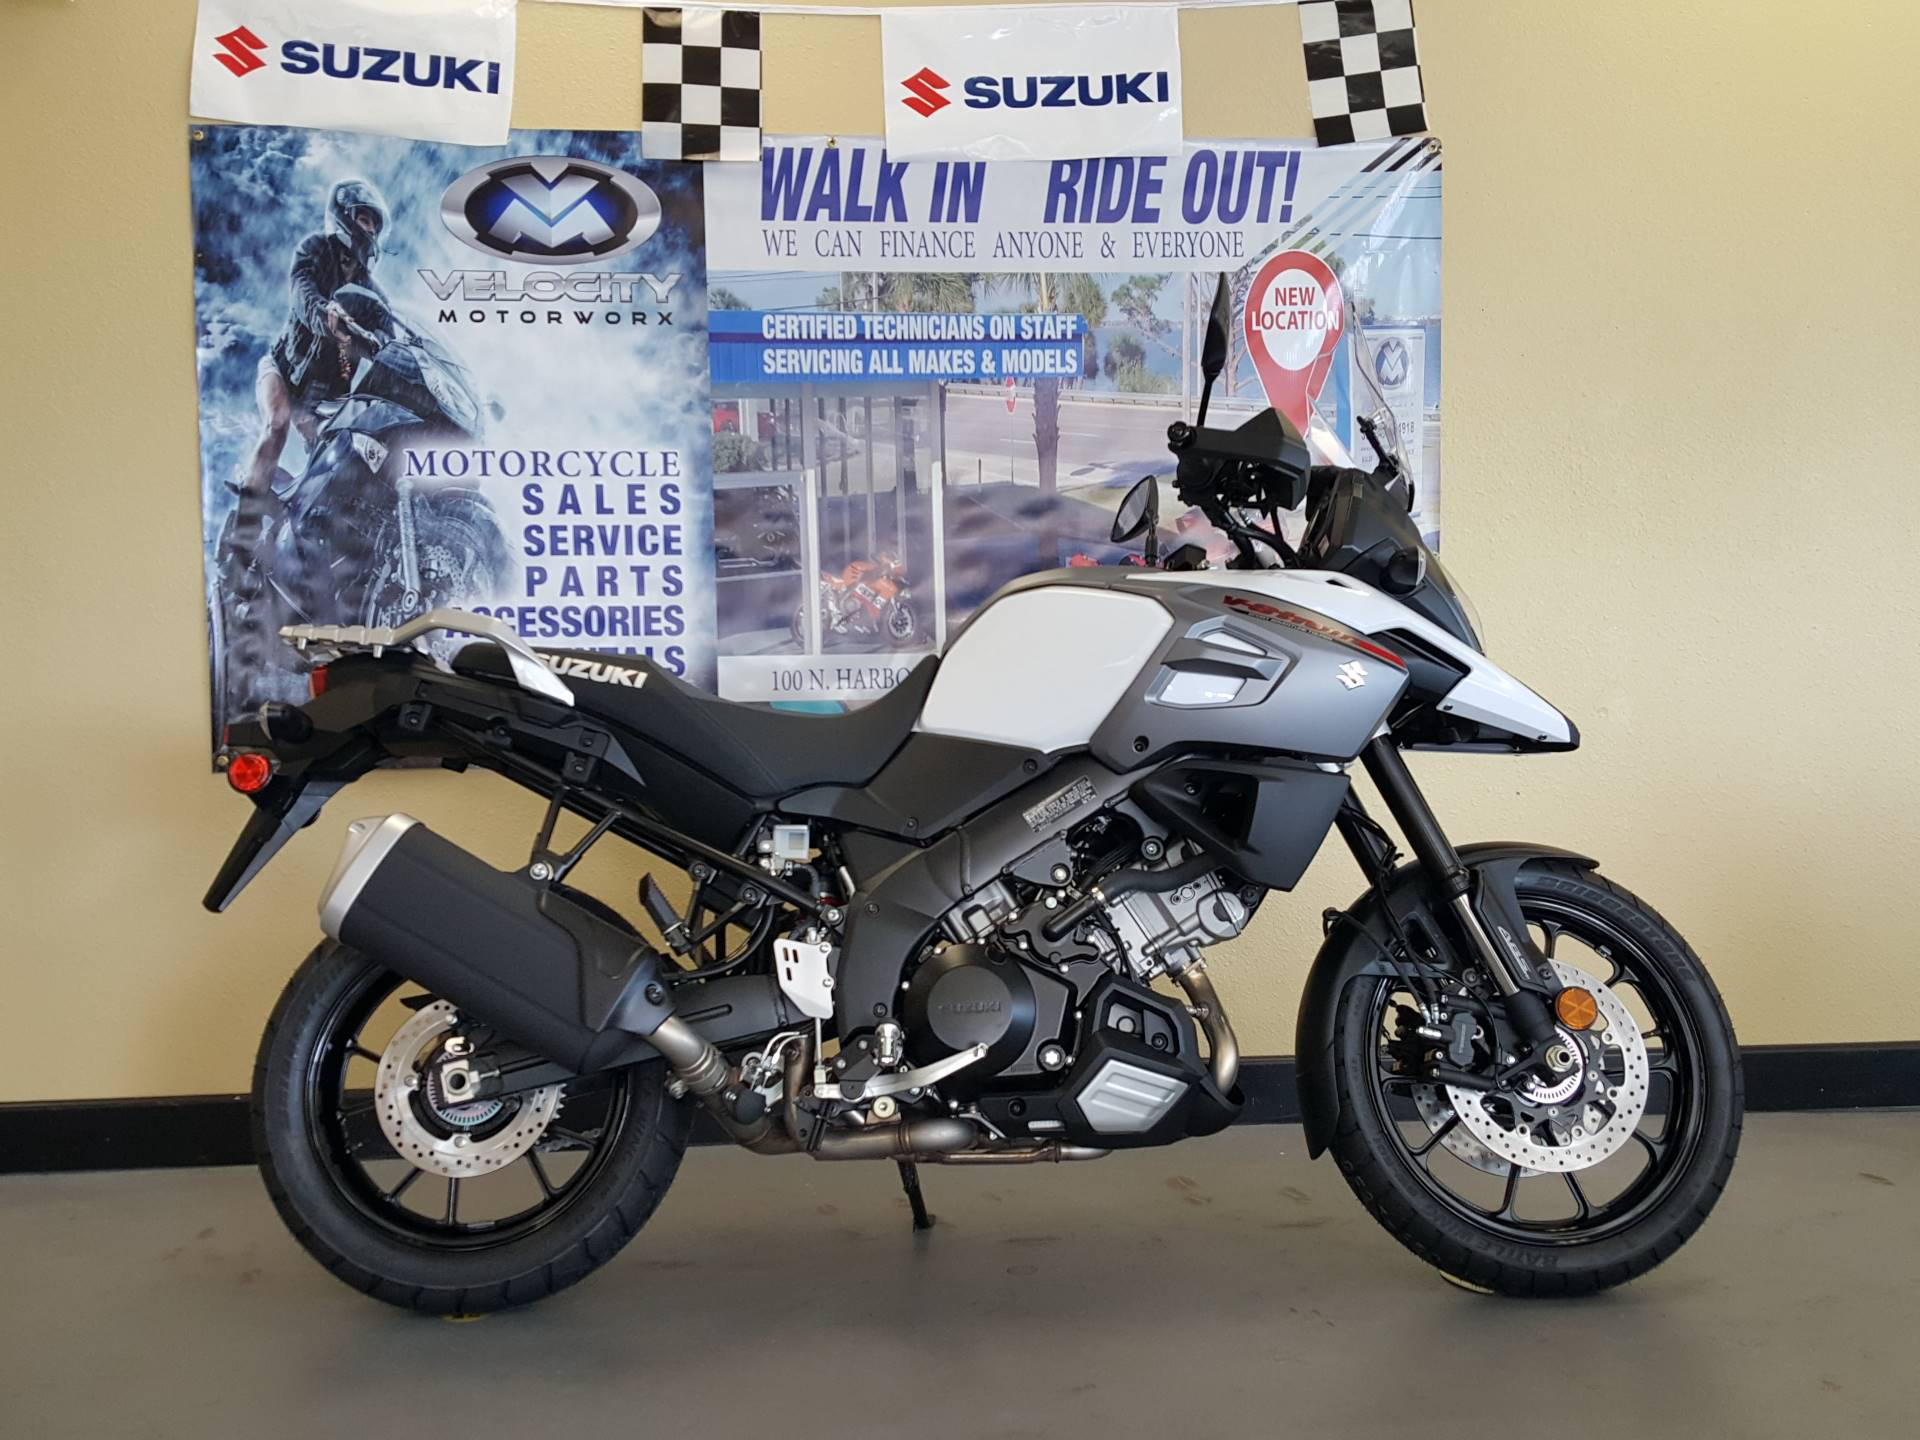 2018 Suzuki V-Strom 1000 in Melbourne, Florida